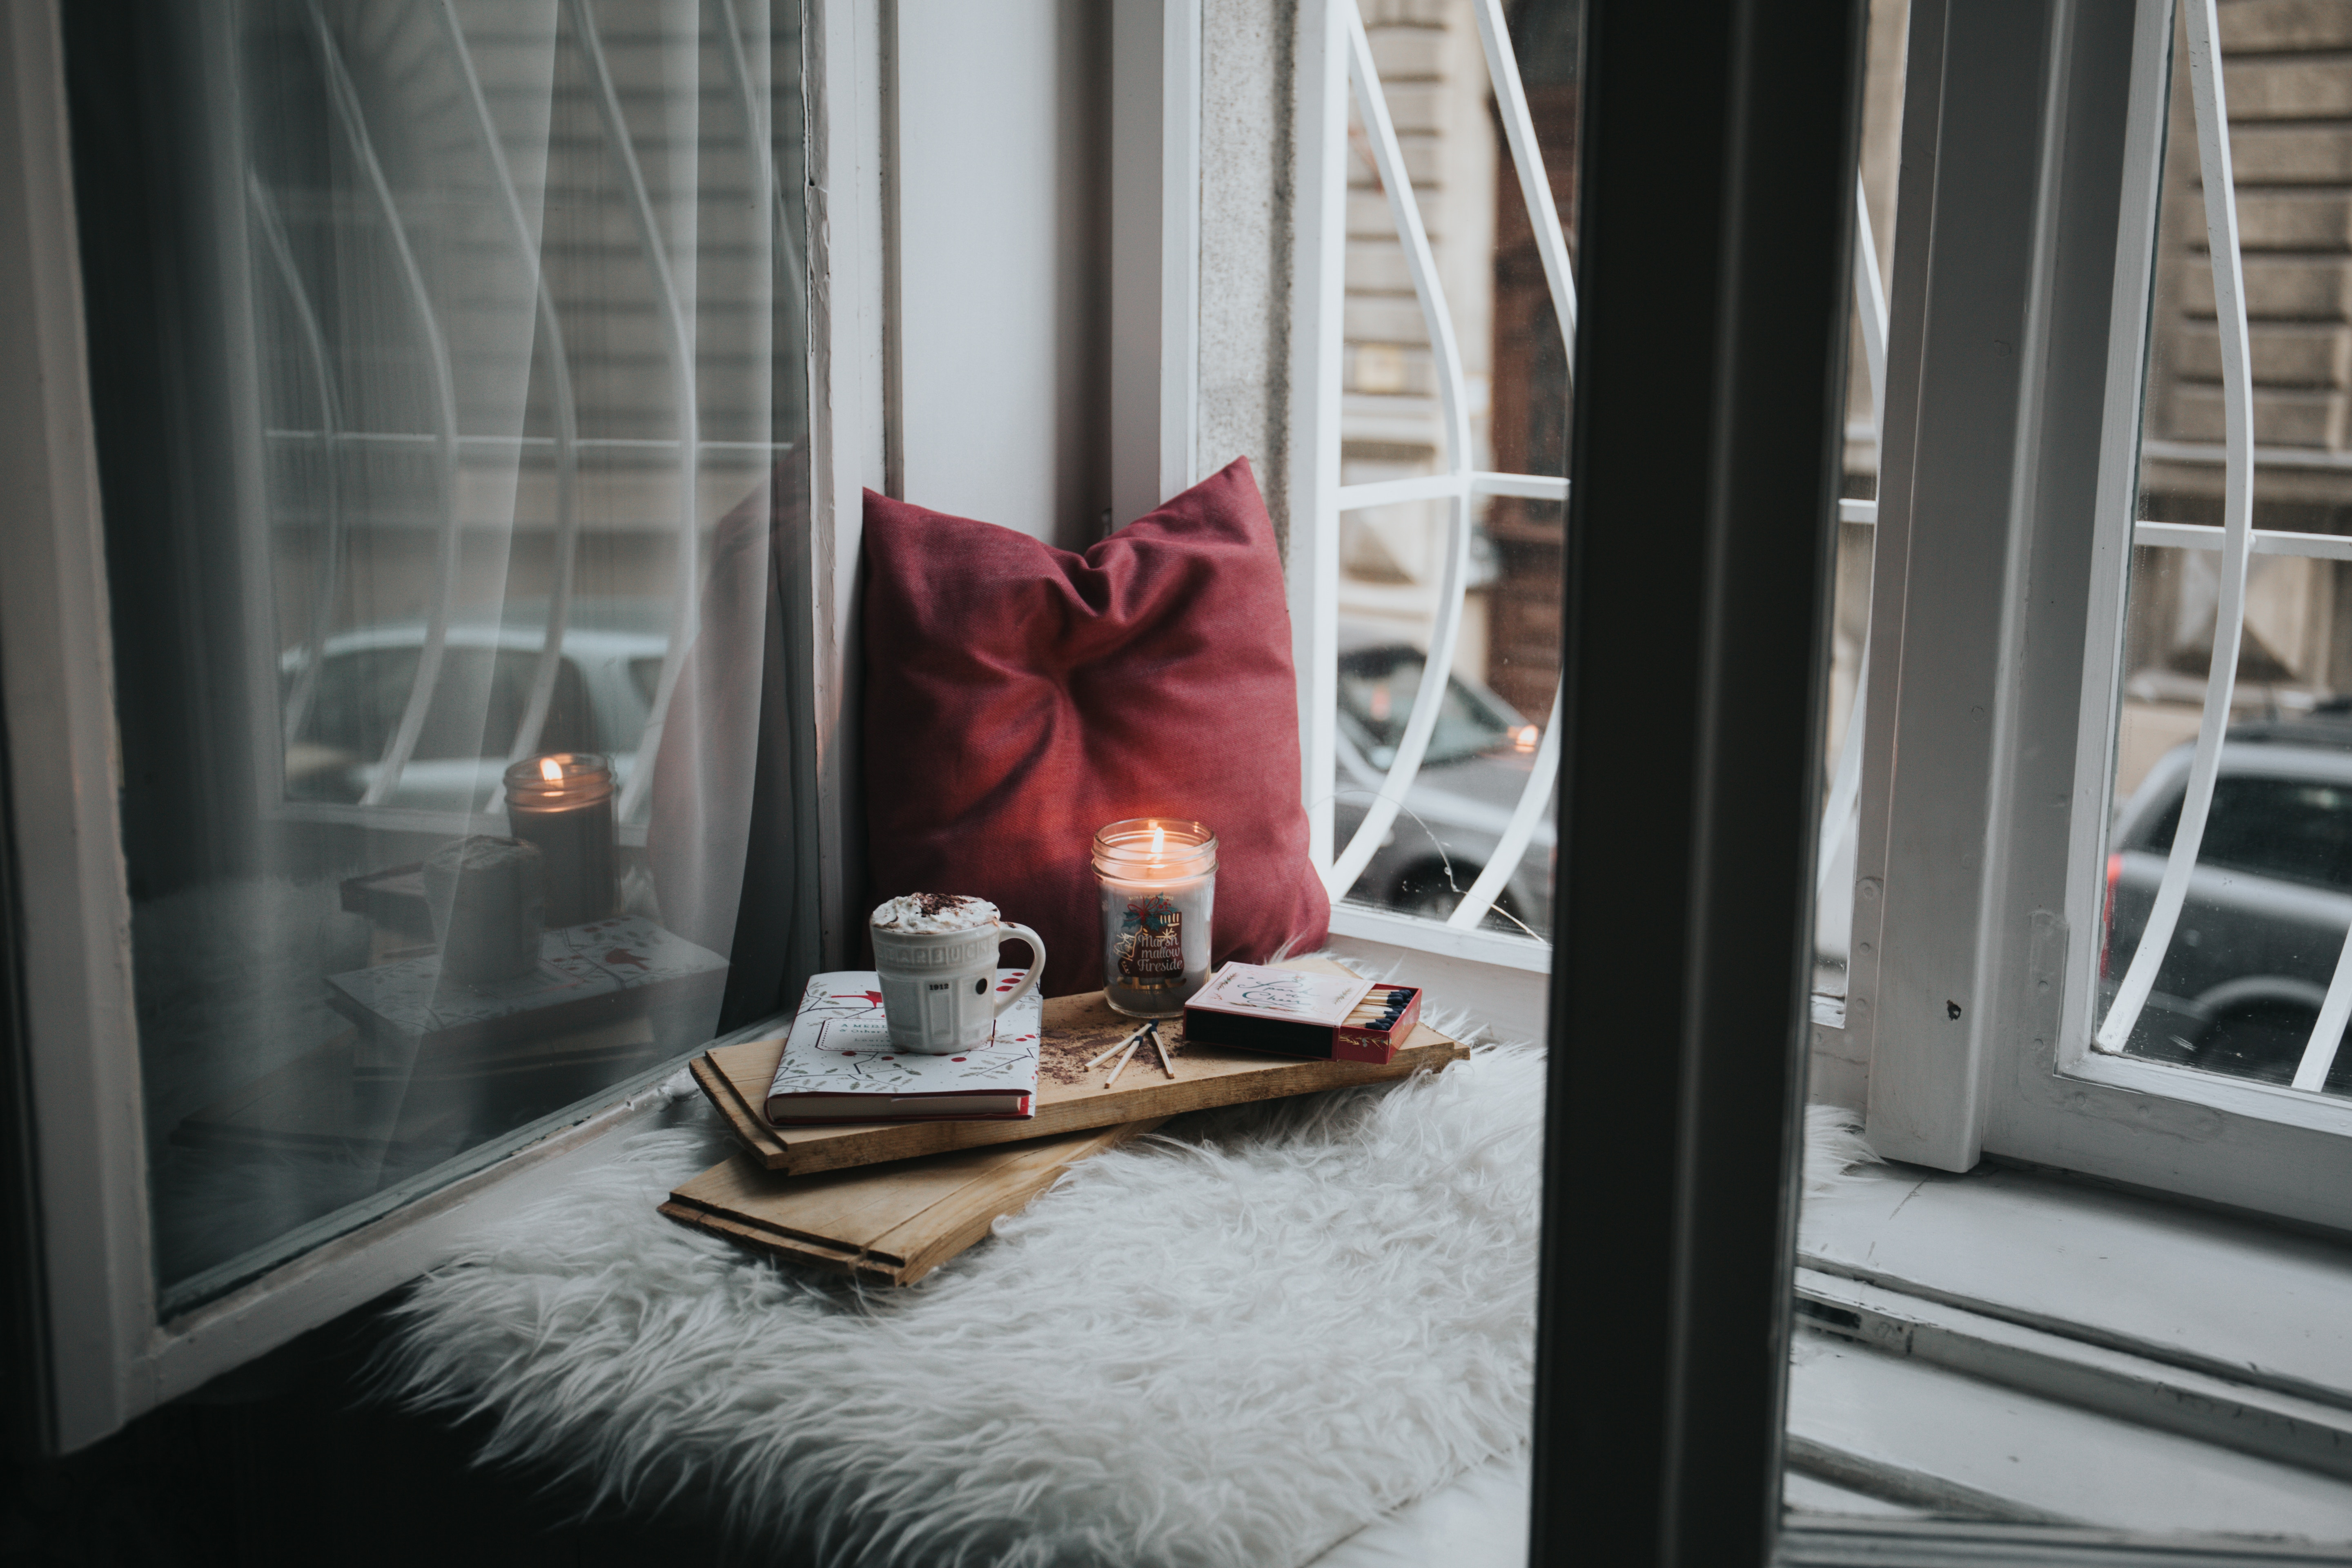 window cup and candle